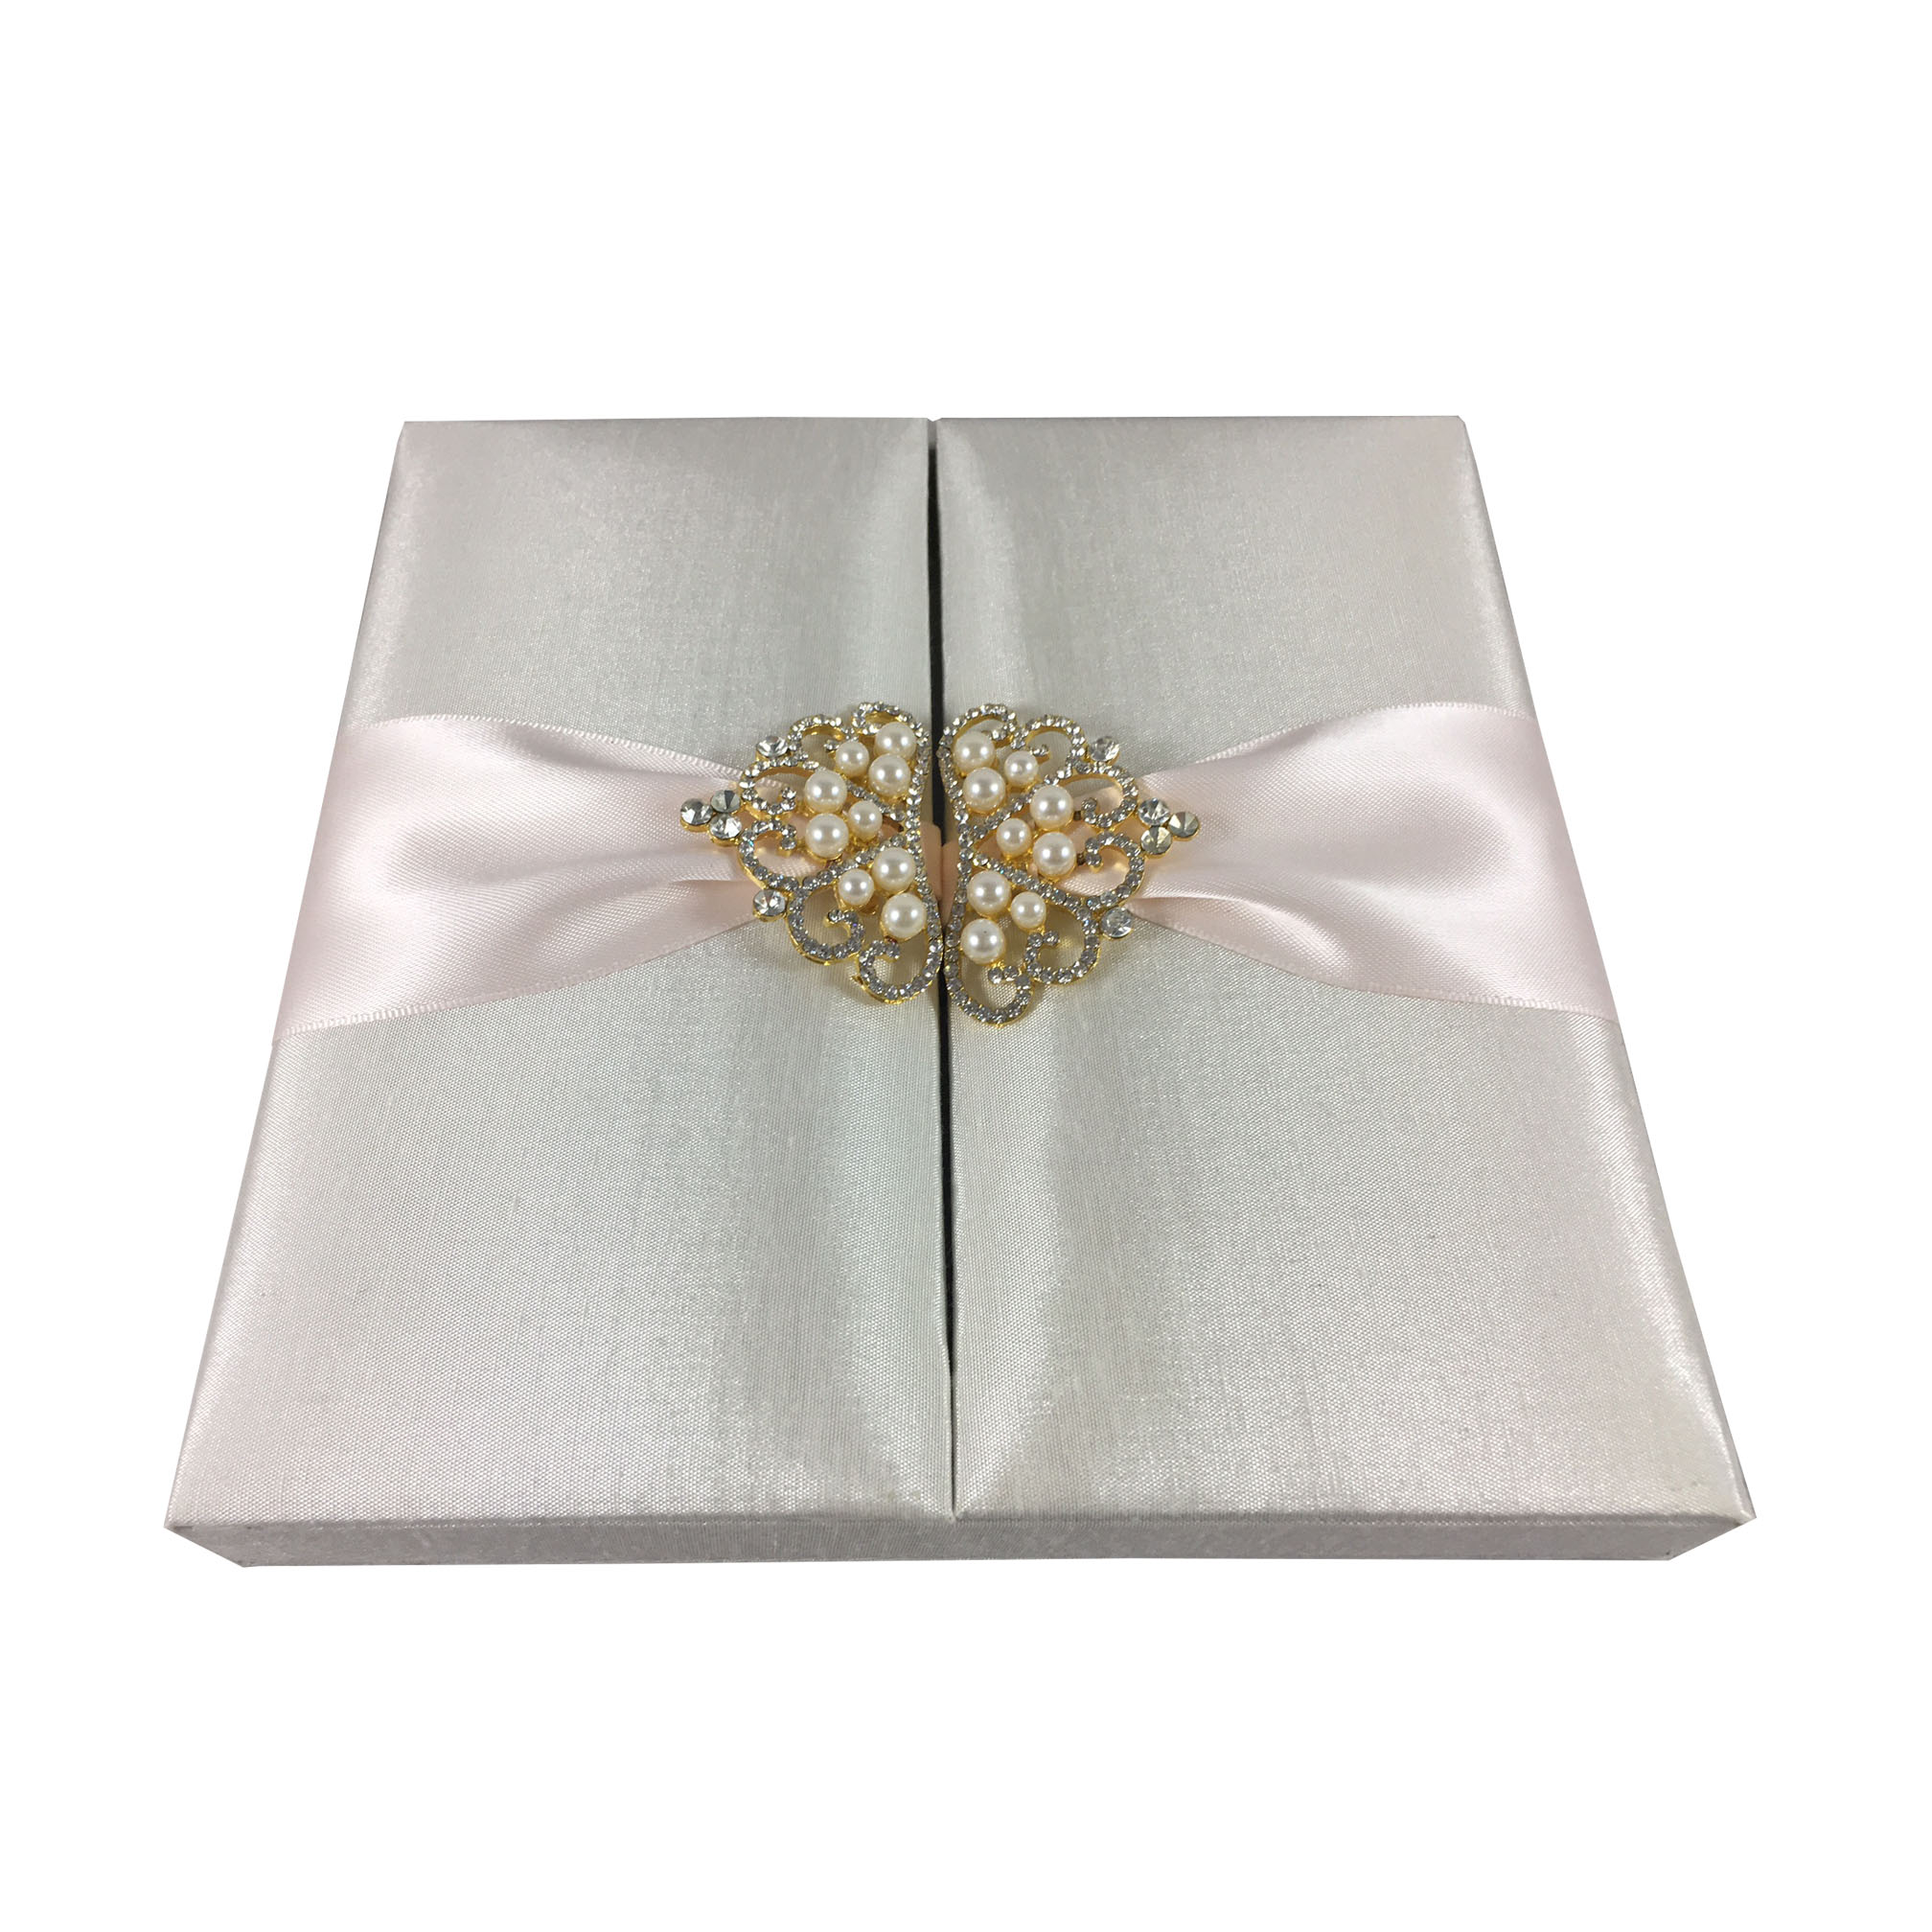 Ivory wedding box with blush ink ribbon and golden crown pearl brooch